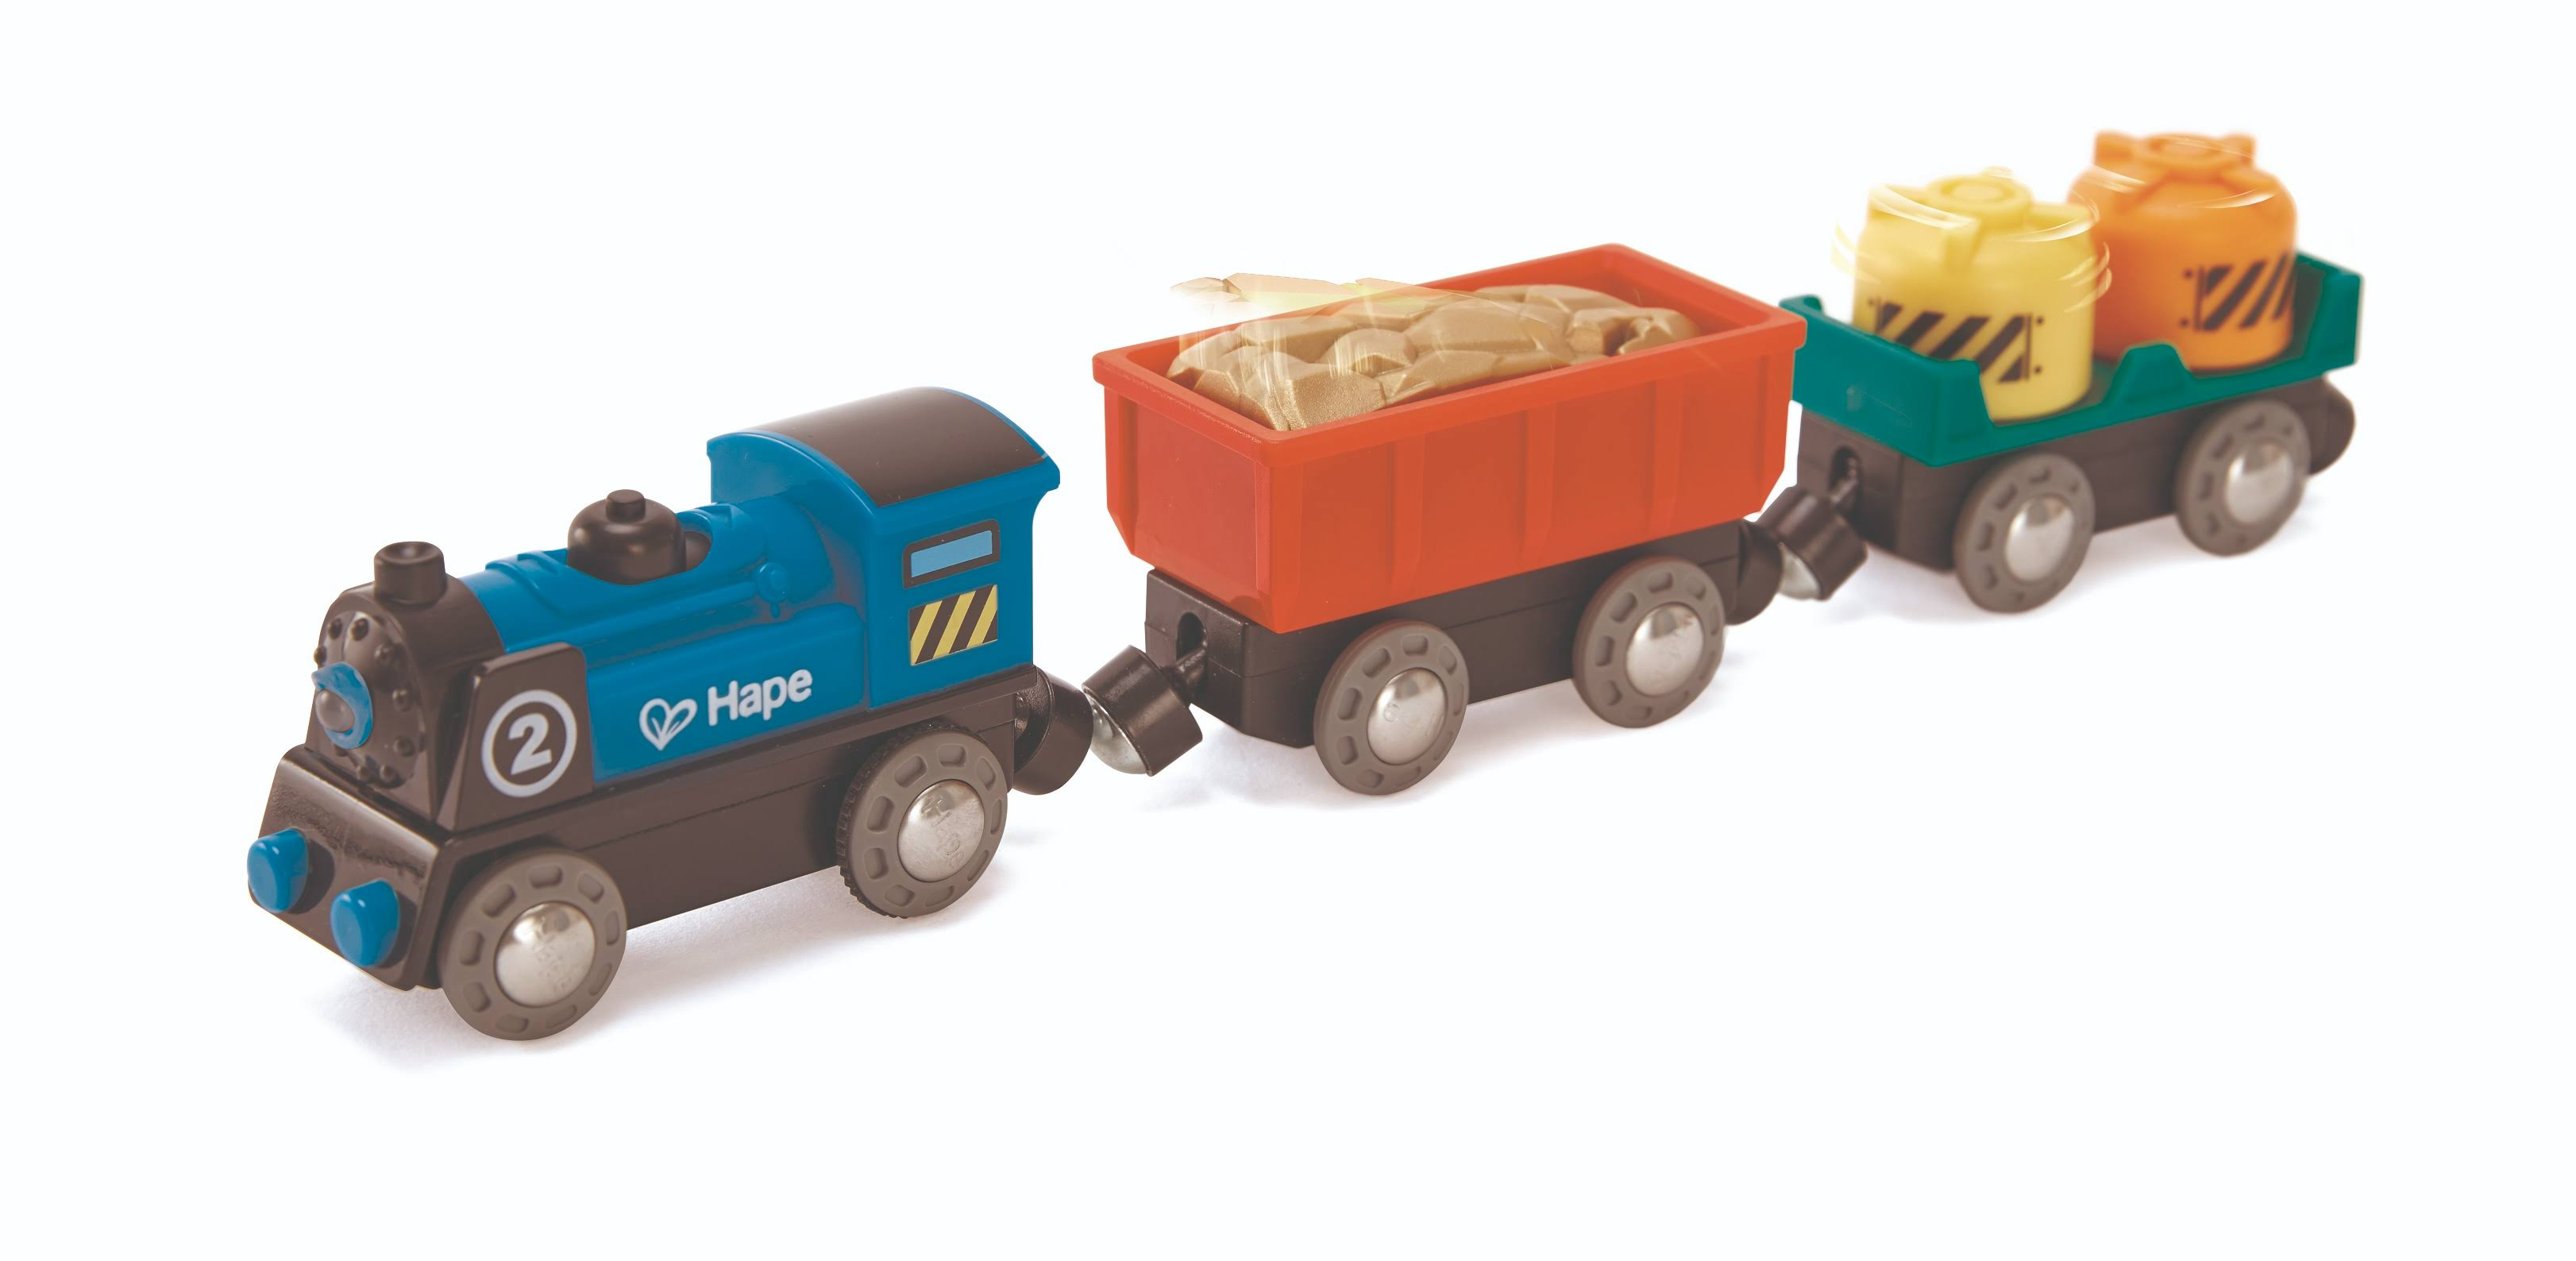 Hape Battery Powered Train Engine Toy Set